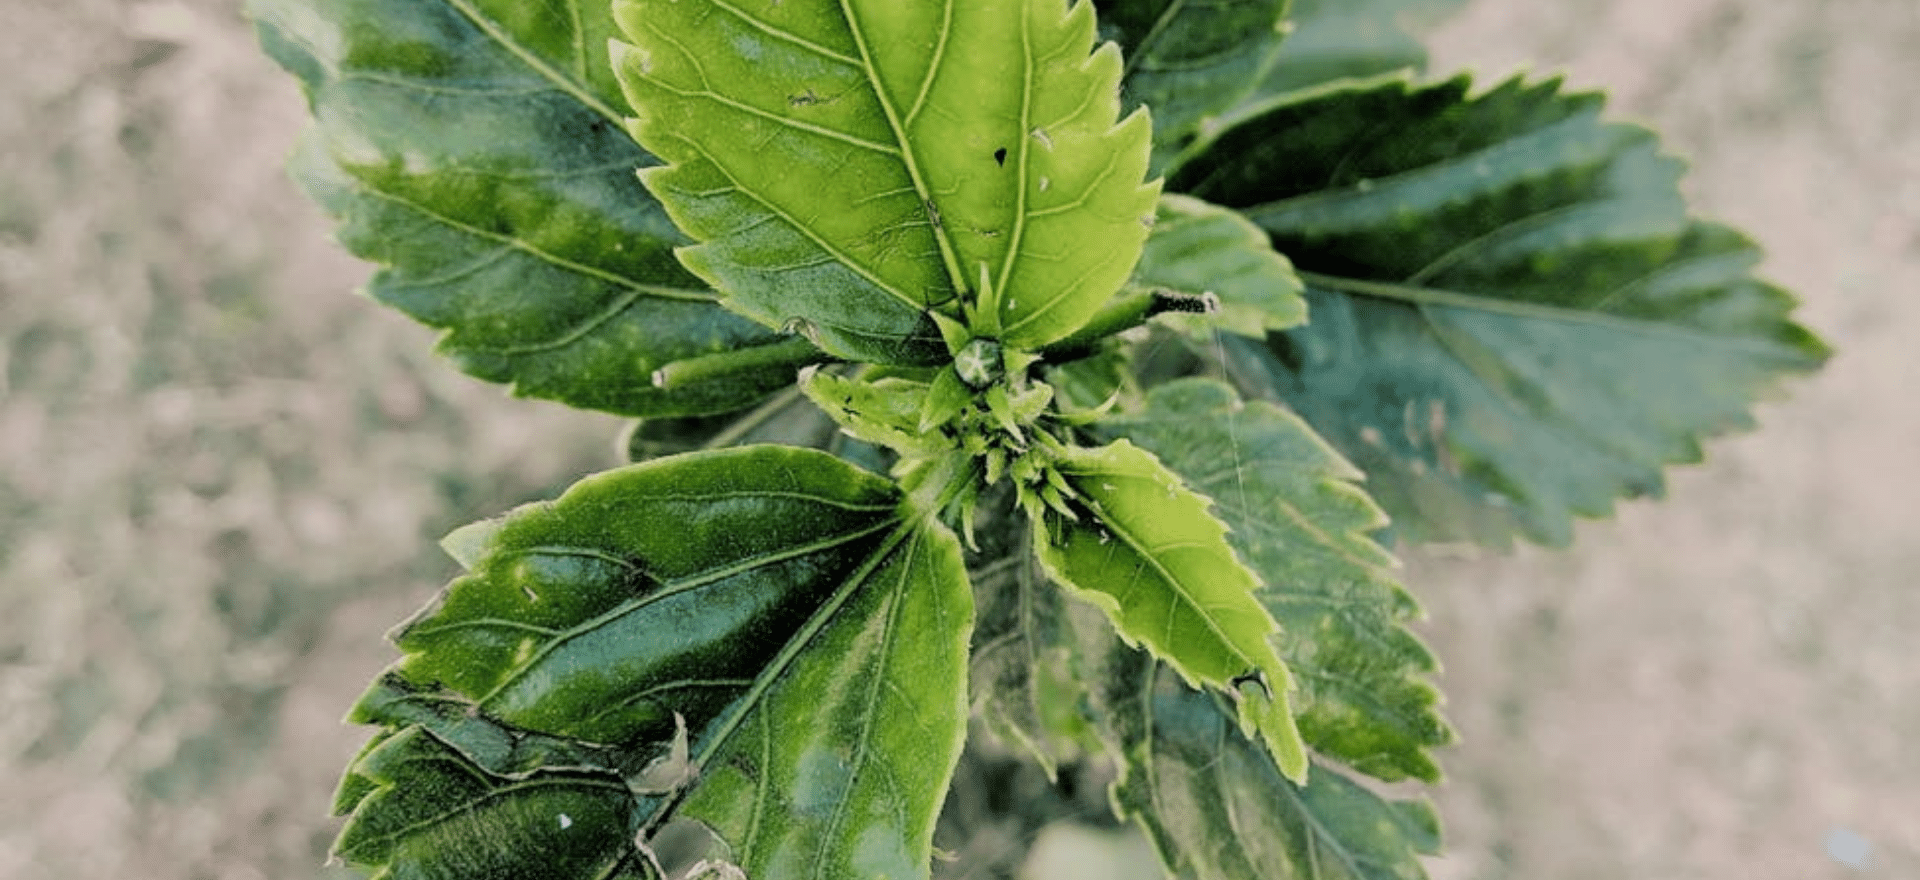 Header image of The Lookout All News Online Events and Virtual Events on Eco-friendly and Sustainable Events